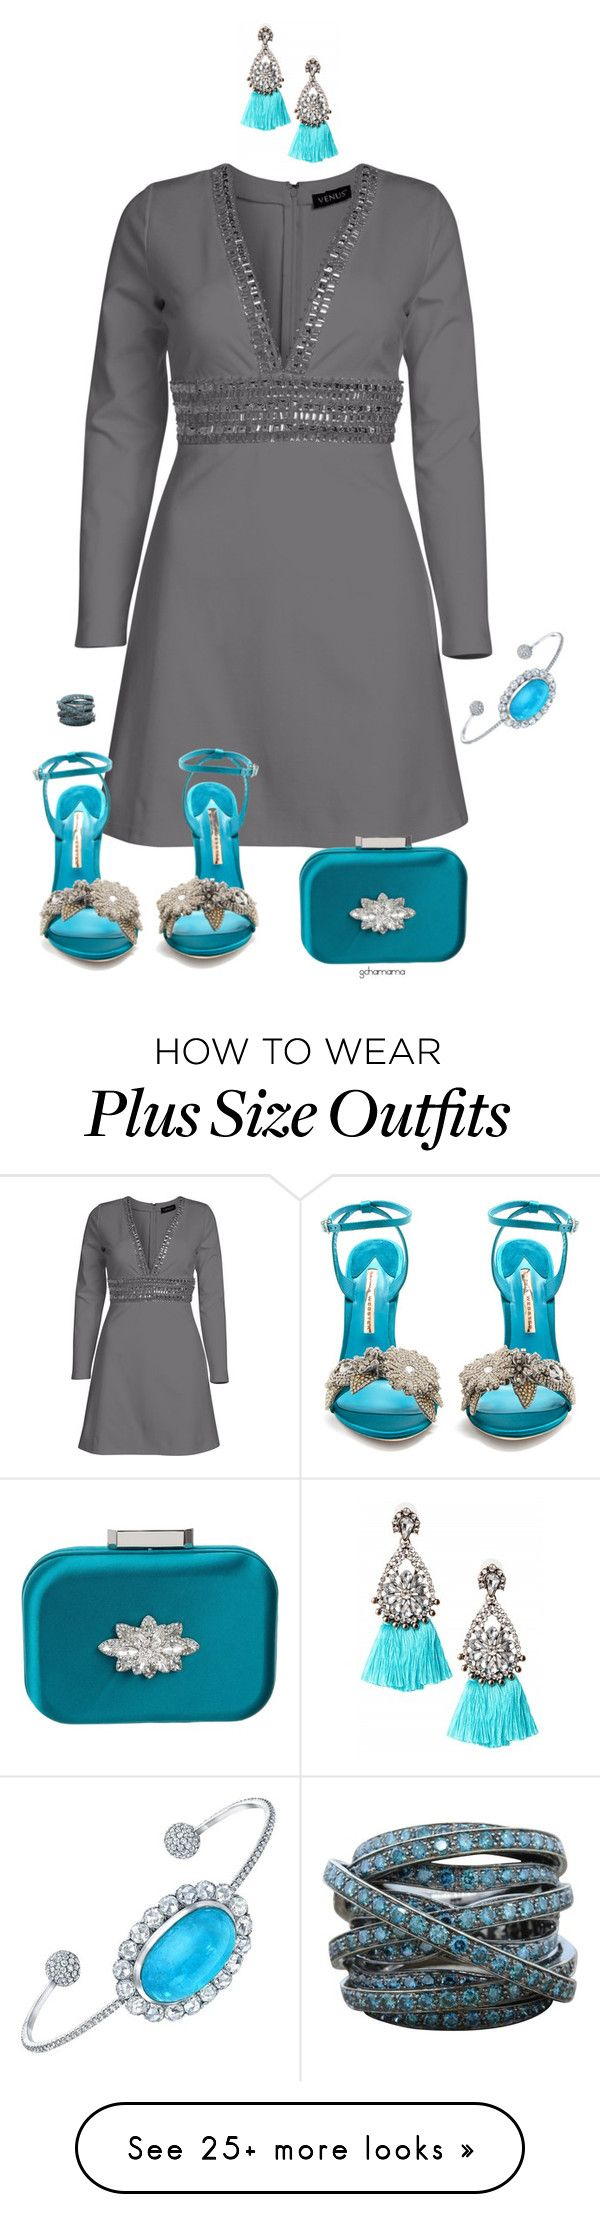 """Just because- plus size"" by gchamama on Polyvore featuring Venus, Sophia Webster, Badgley Mischka and Tamir"